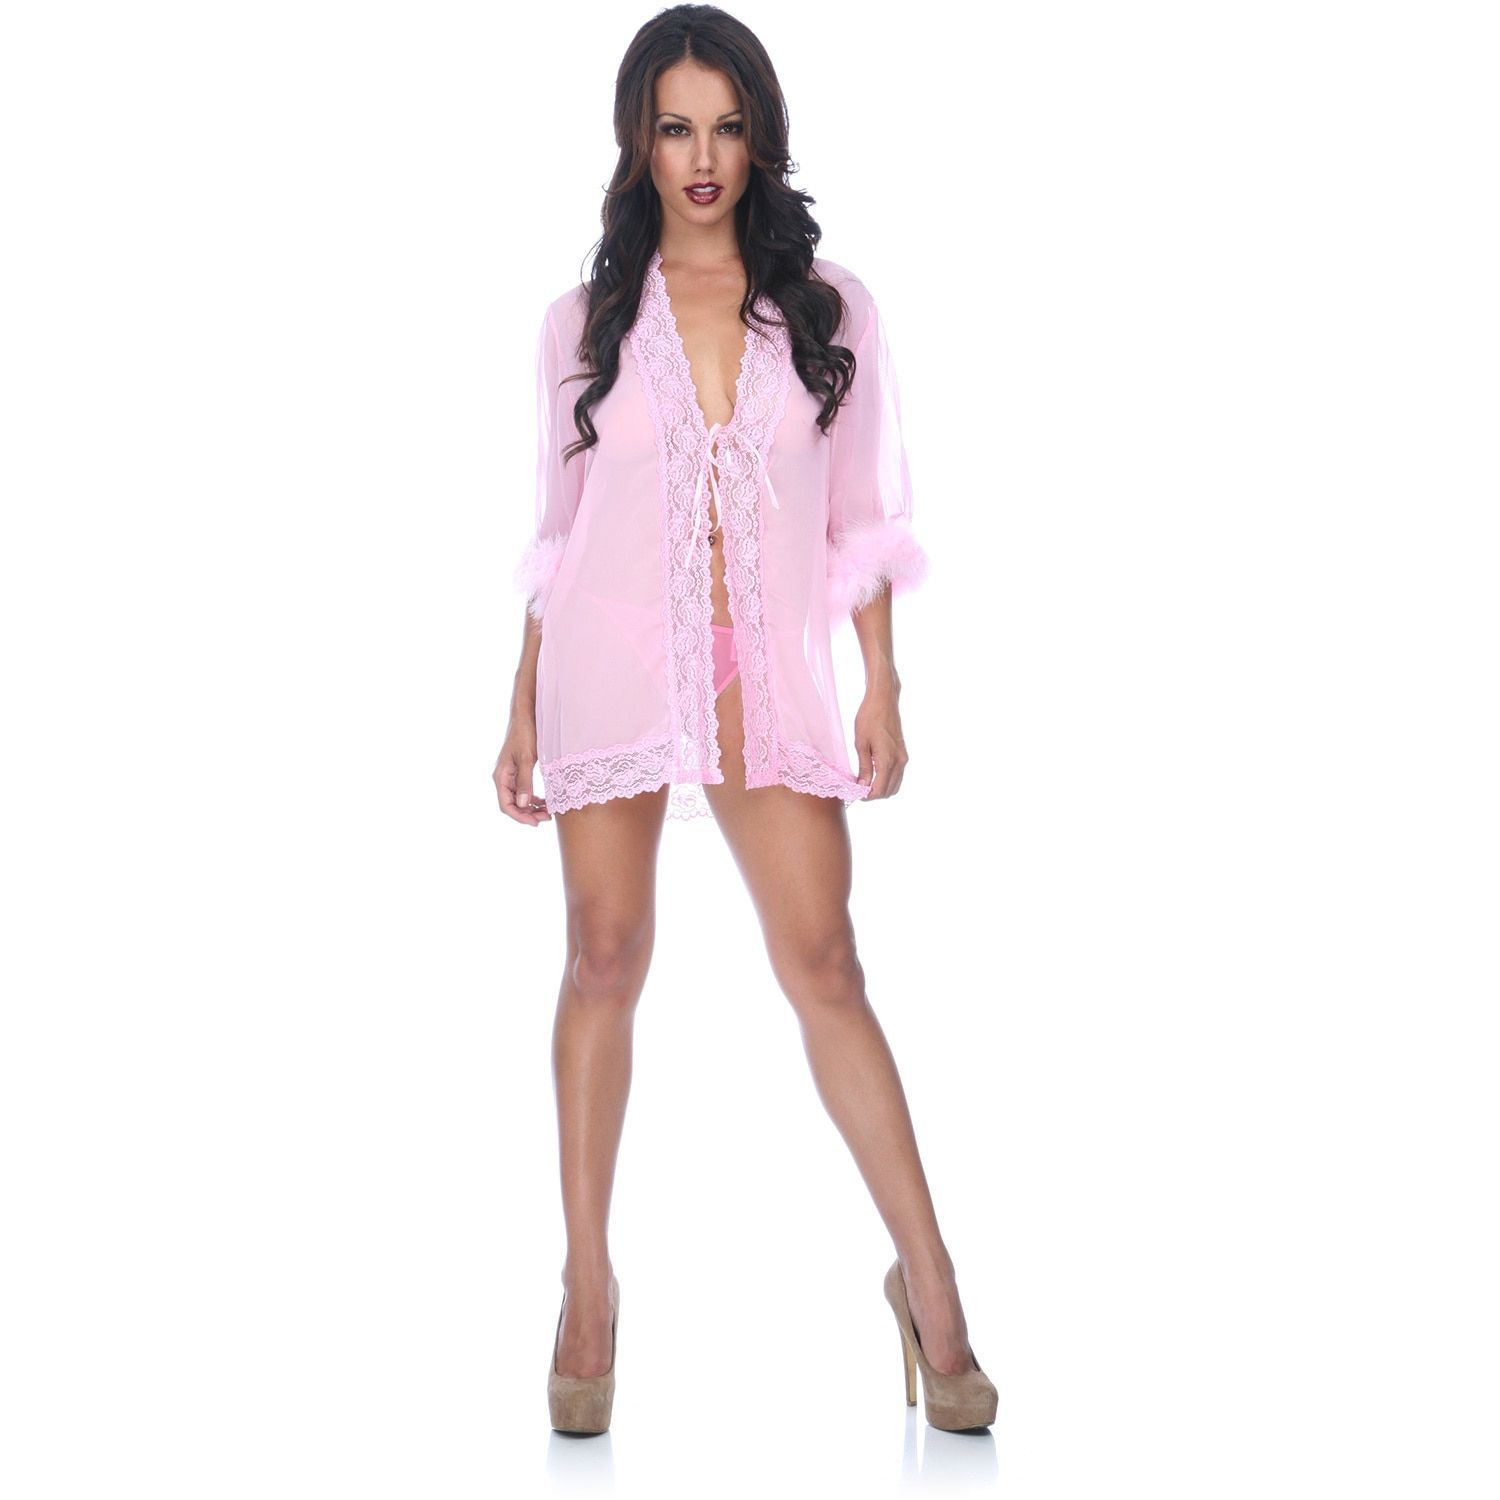 Popsi Lingerie and Lace Robe   Products   Pinterest